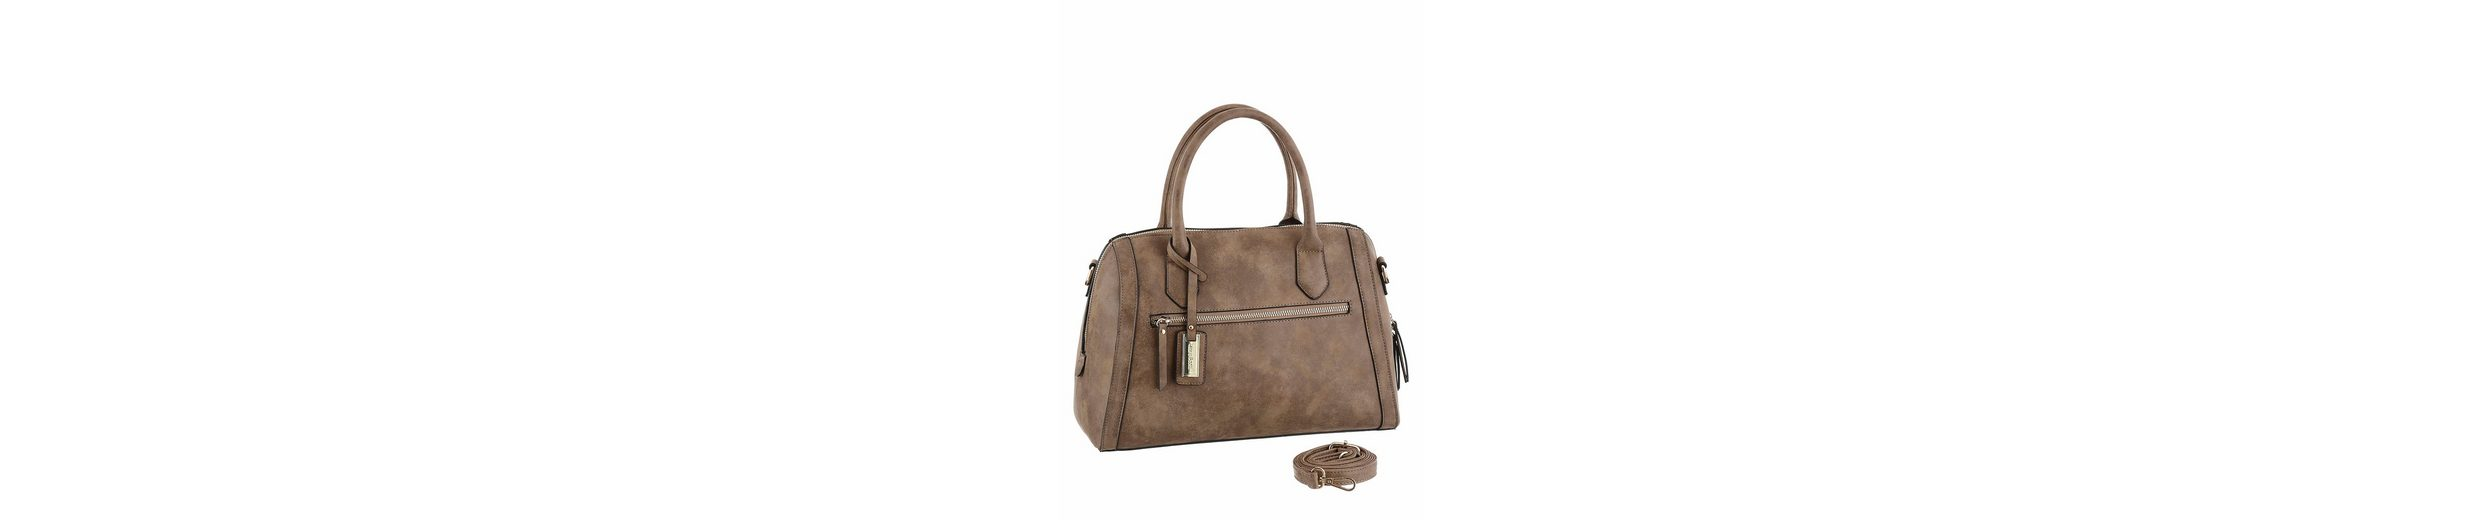 Laura Scott Henkeltasche, in Used-Optik